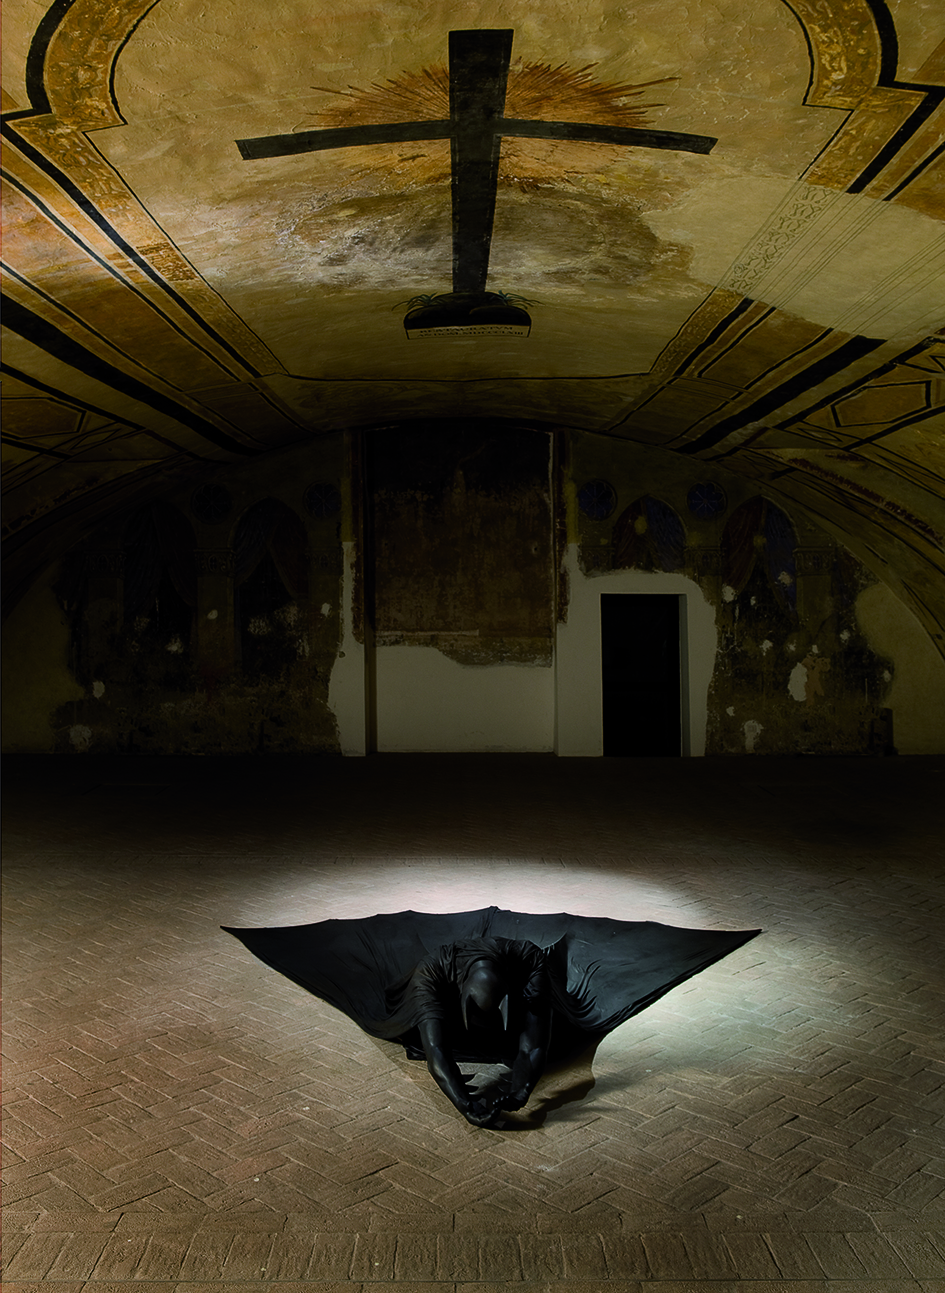 I'LL NEVER GET TO YOU , 2009 . Complesso Monumentale del San Michele, Rome. Installation view. Photo: Claudio Abate